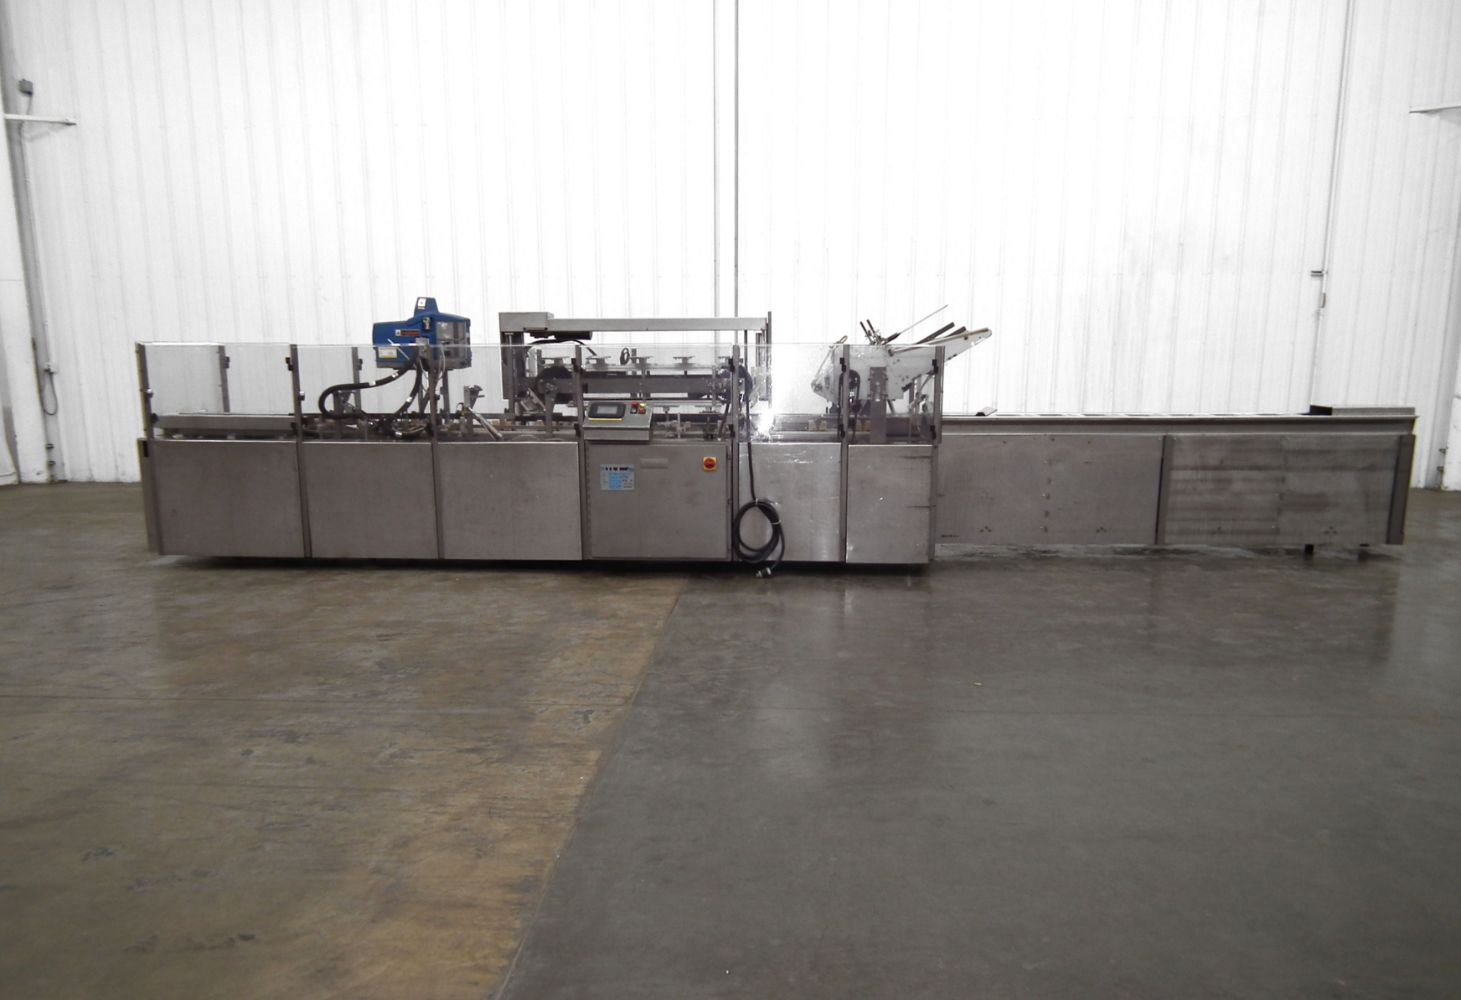 Surplus Assets to the Ongoing Operations of a Major Food Manufacturer - Multi-Location Auction